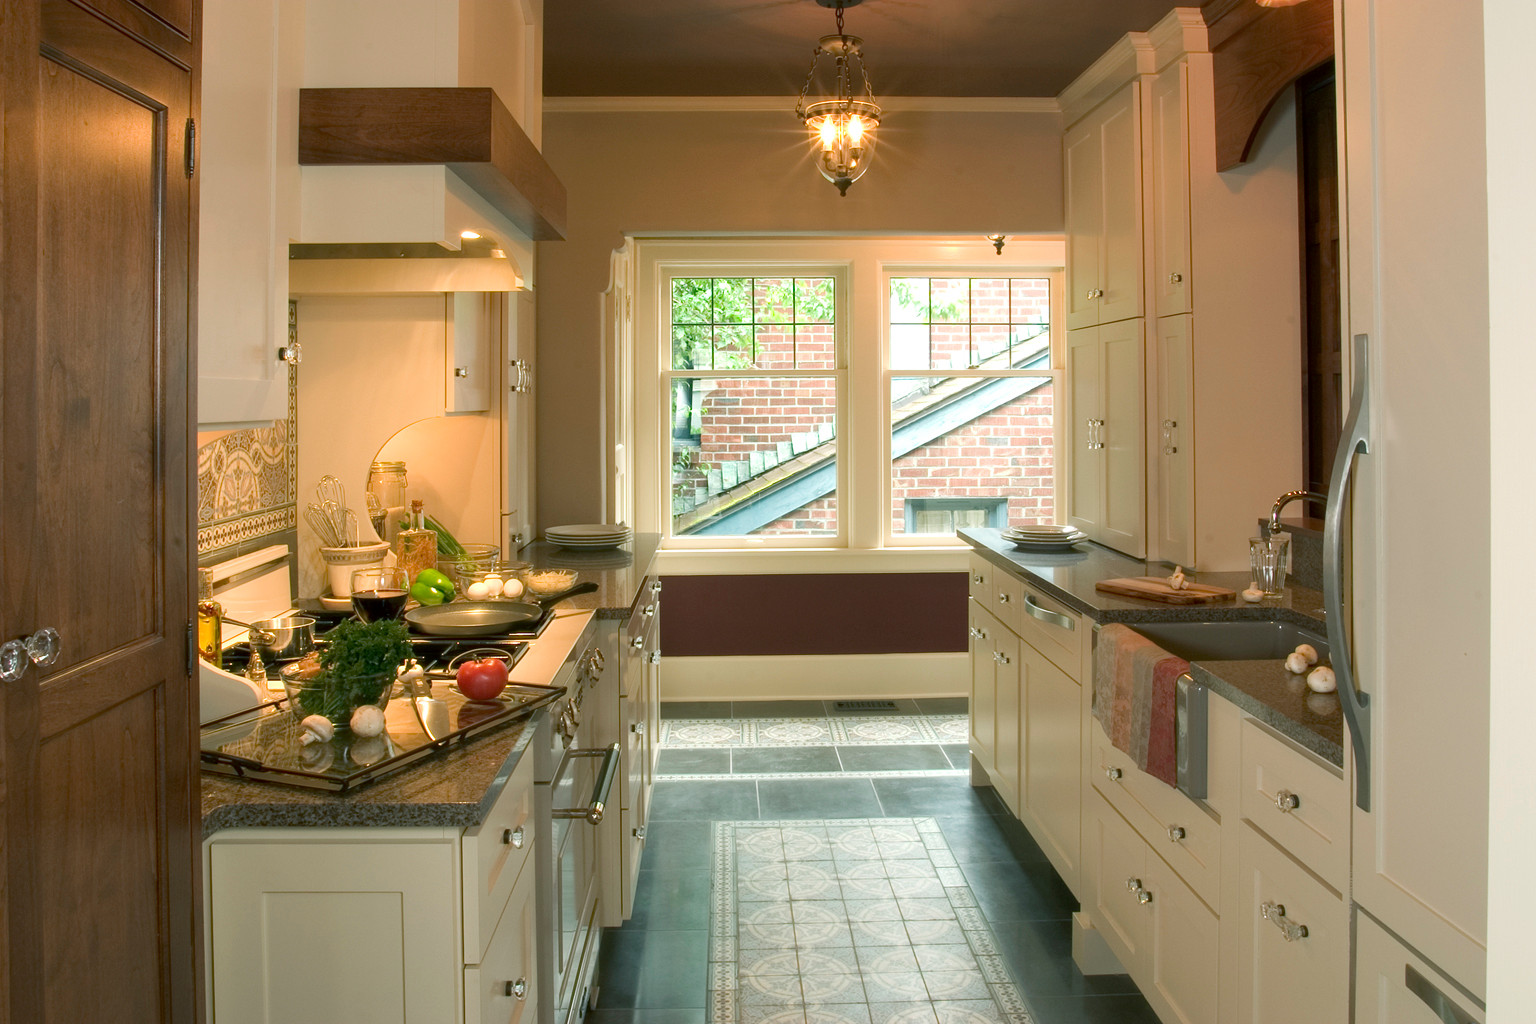 Wallingford Tudor Galley Kitchen Remodel - Home Birth Year 1927